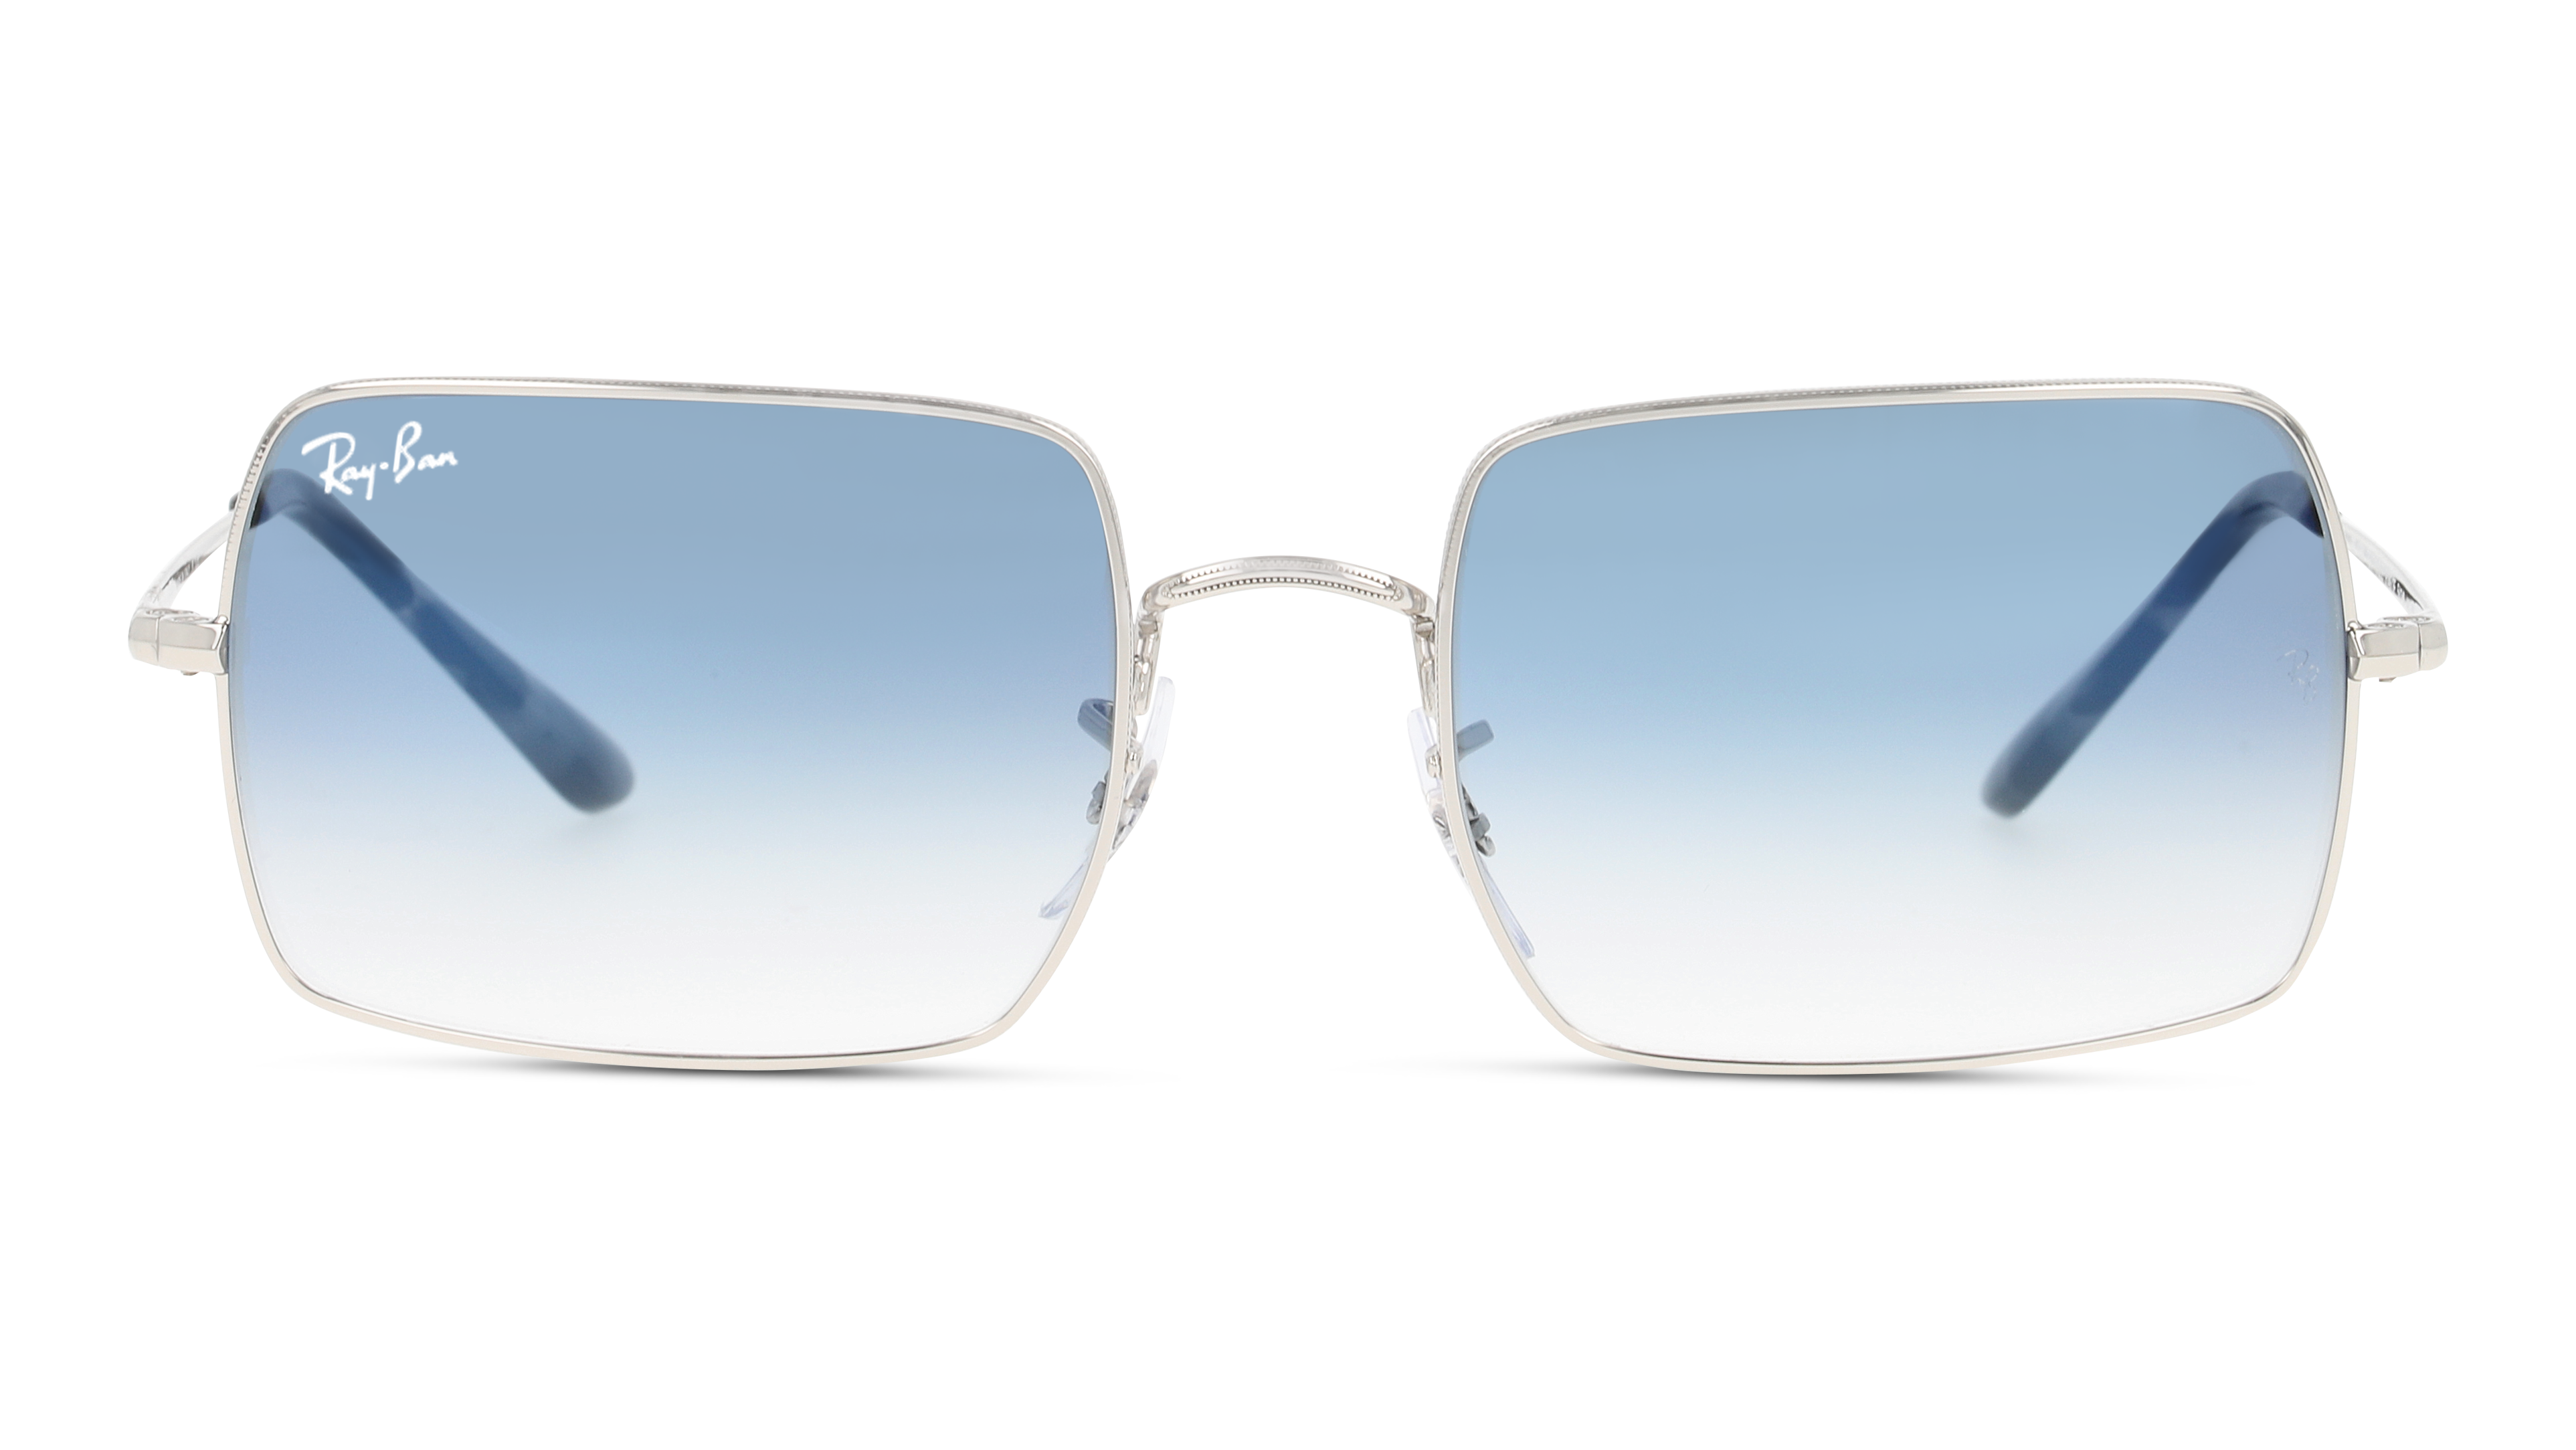 Front Ray-Ban Ray-Ban 0RB1969 91493F 54/19 Zilver/Blauw